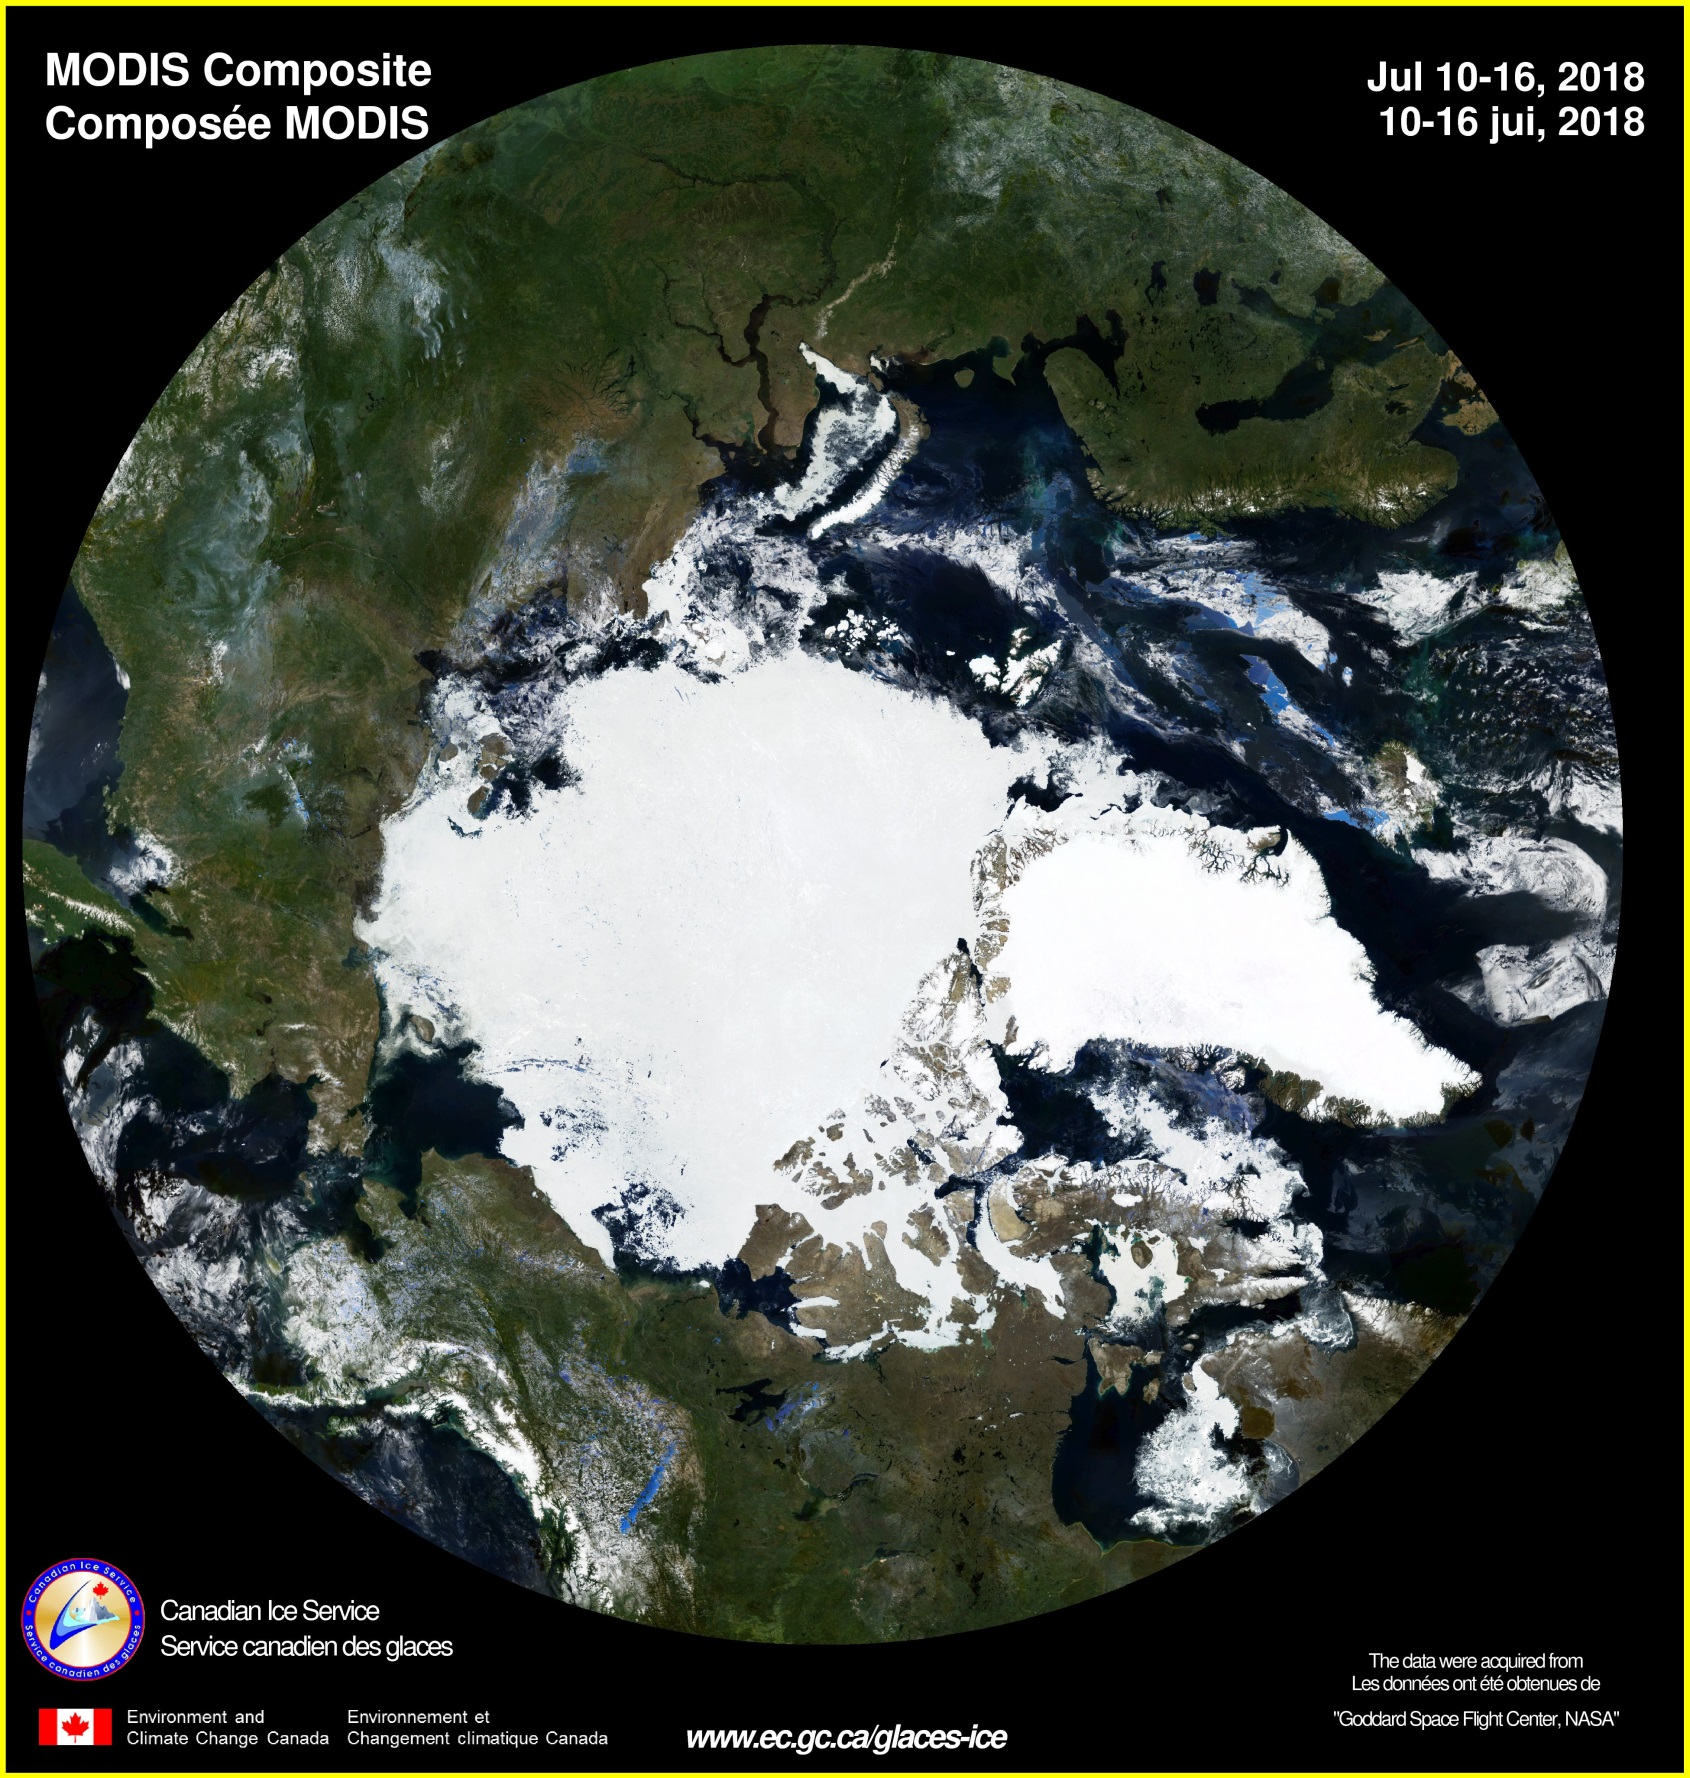 This MODIS composite map of Arctic Ocean snow/ice is for the week July 10-16, 2018 (courtesy Canadian Ice Service, NASA). The ice information is updated daily in areas of known marine activity and weekly in remaining Canadian waters.